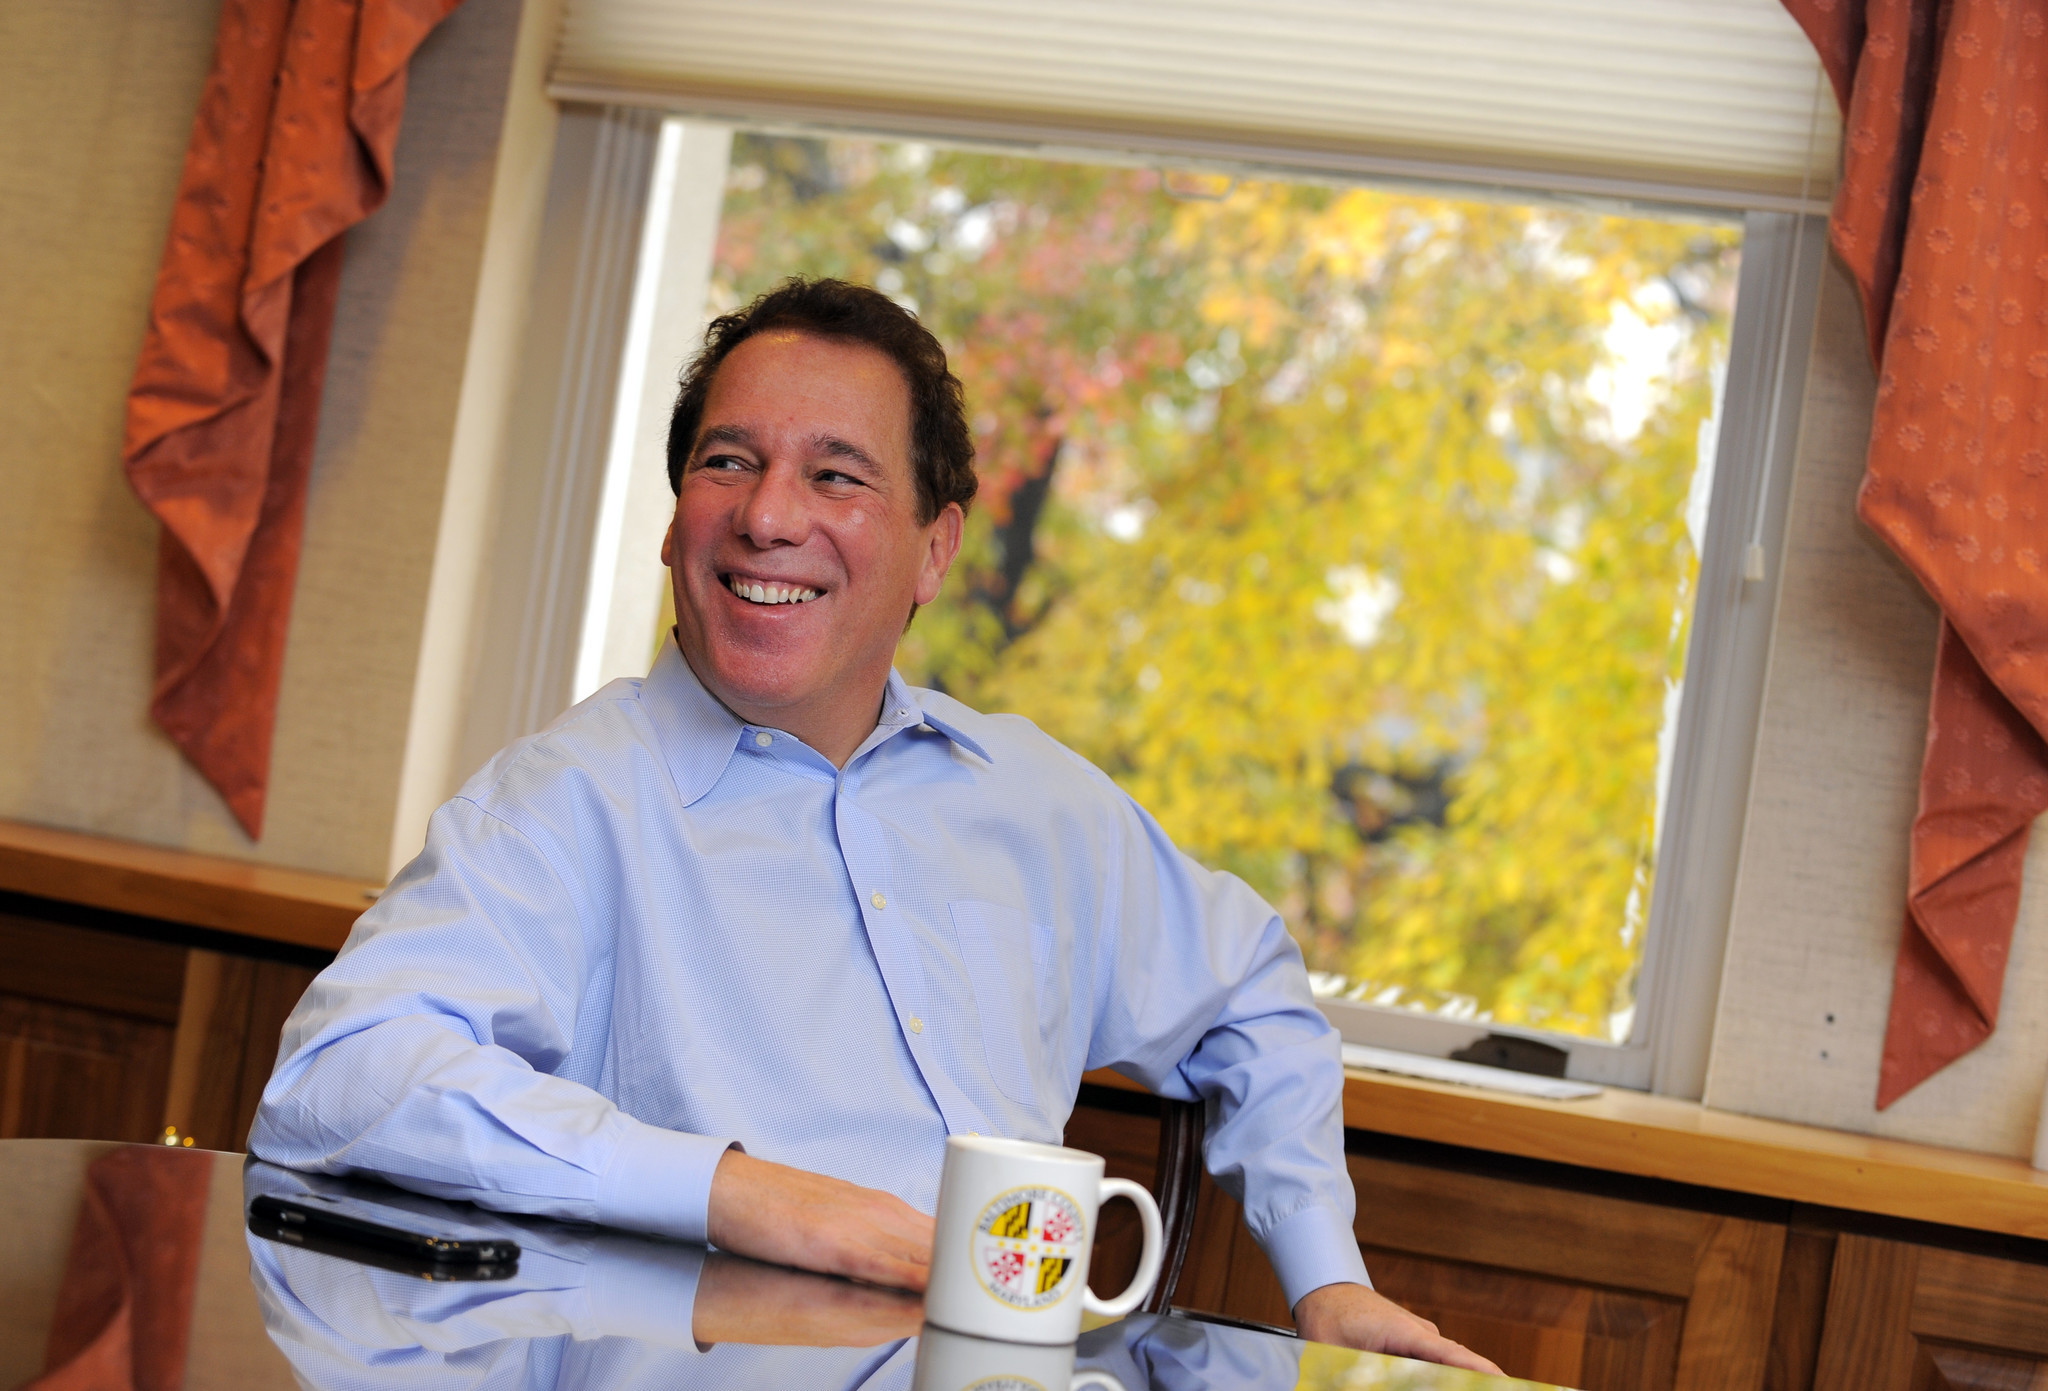 Baltimore County Executive Kevin Kamenetz Joins Democratic Race For Governor